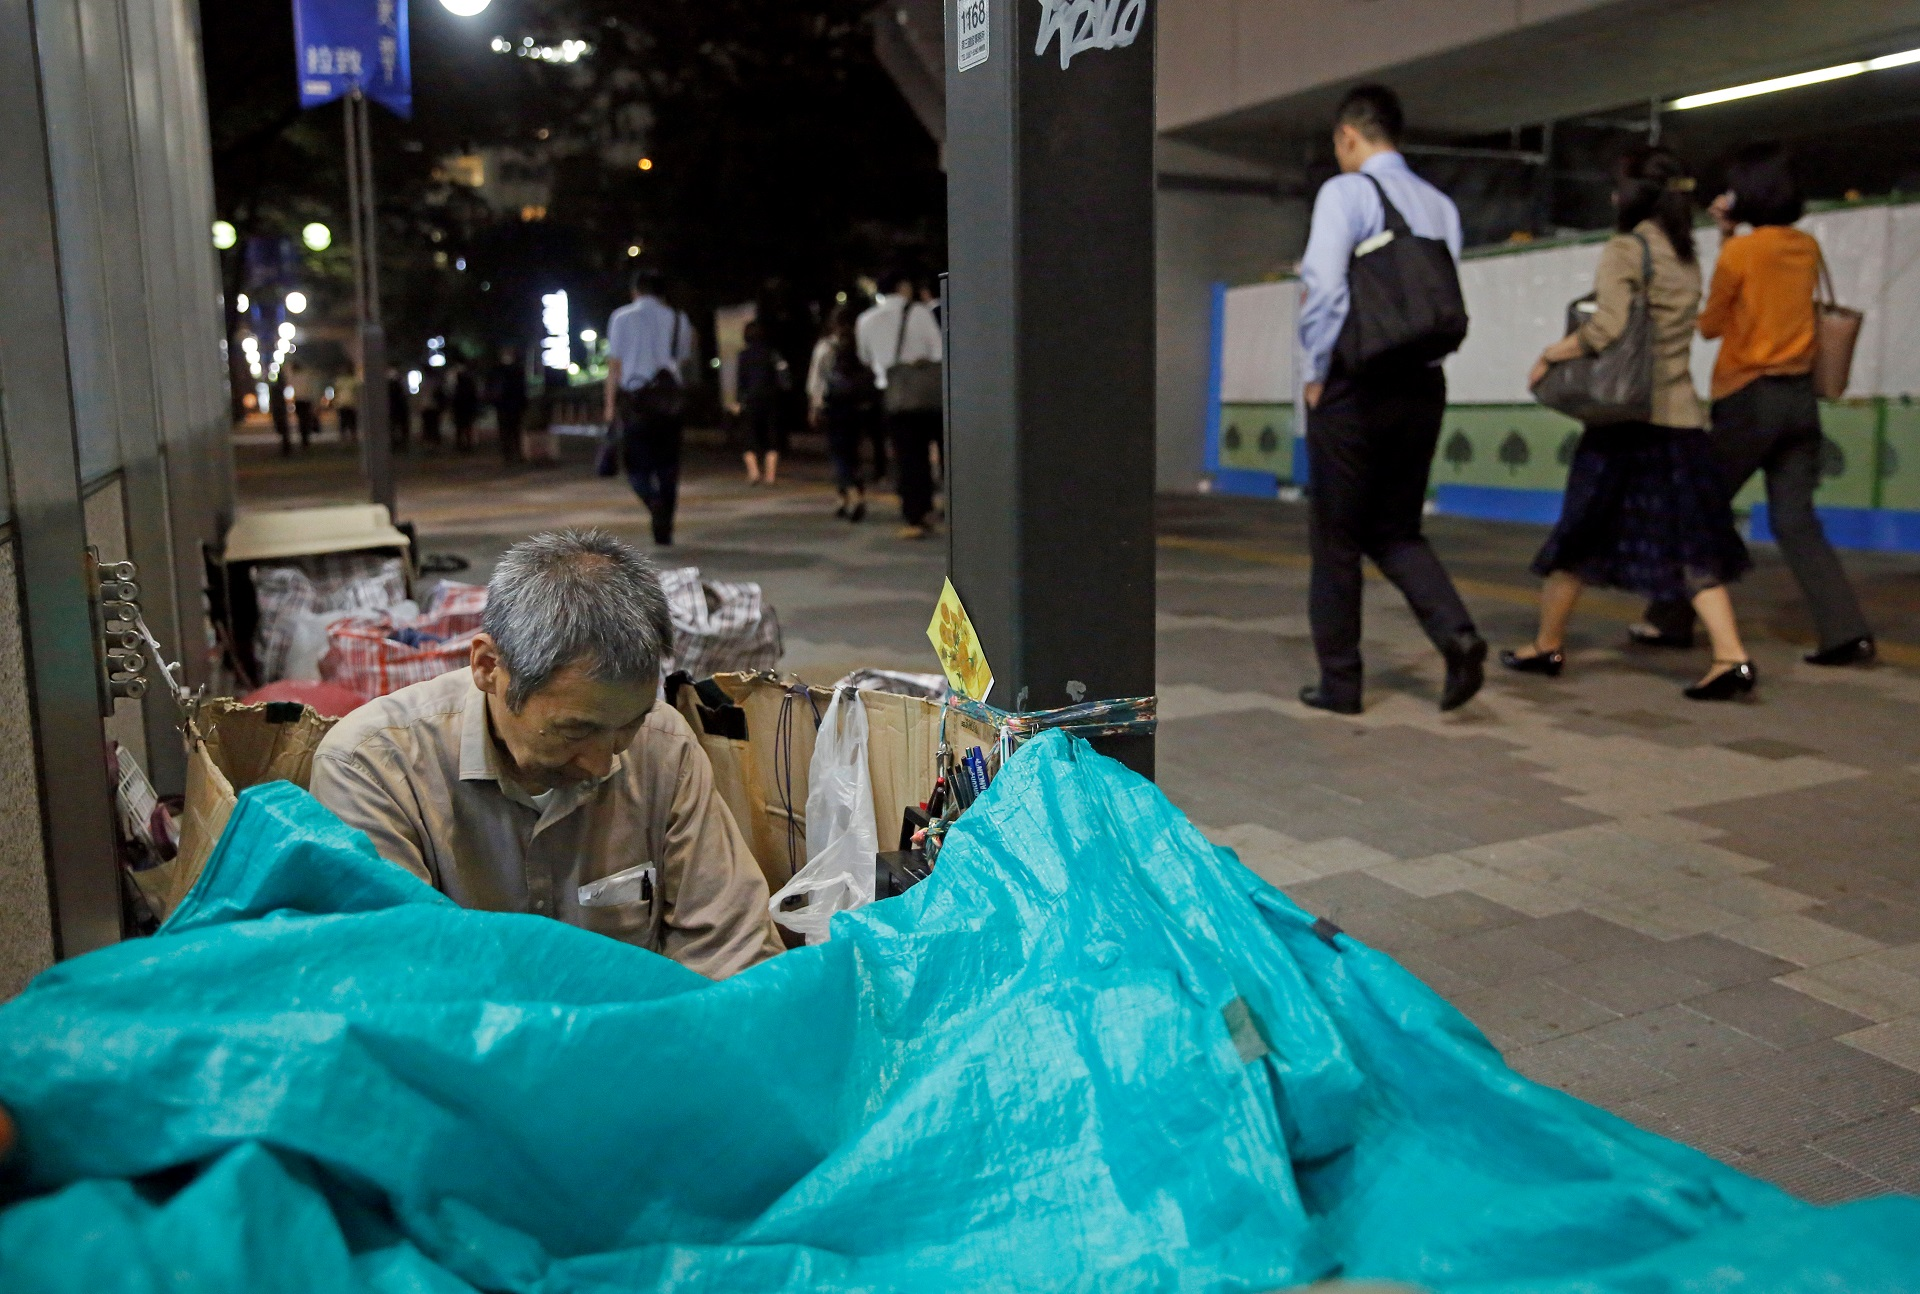 """Masayoshi Koiso, a 69-year-old homeless man, who is members of Newcomer """"H"""" Sokerissa! - a group of current and former homeless dancers, prepares to sleep on a street in Tokyo, Japan, September 6, 2017. Picture taken September 6, 2017. REUTERS/Toru Hanai"""